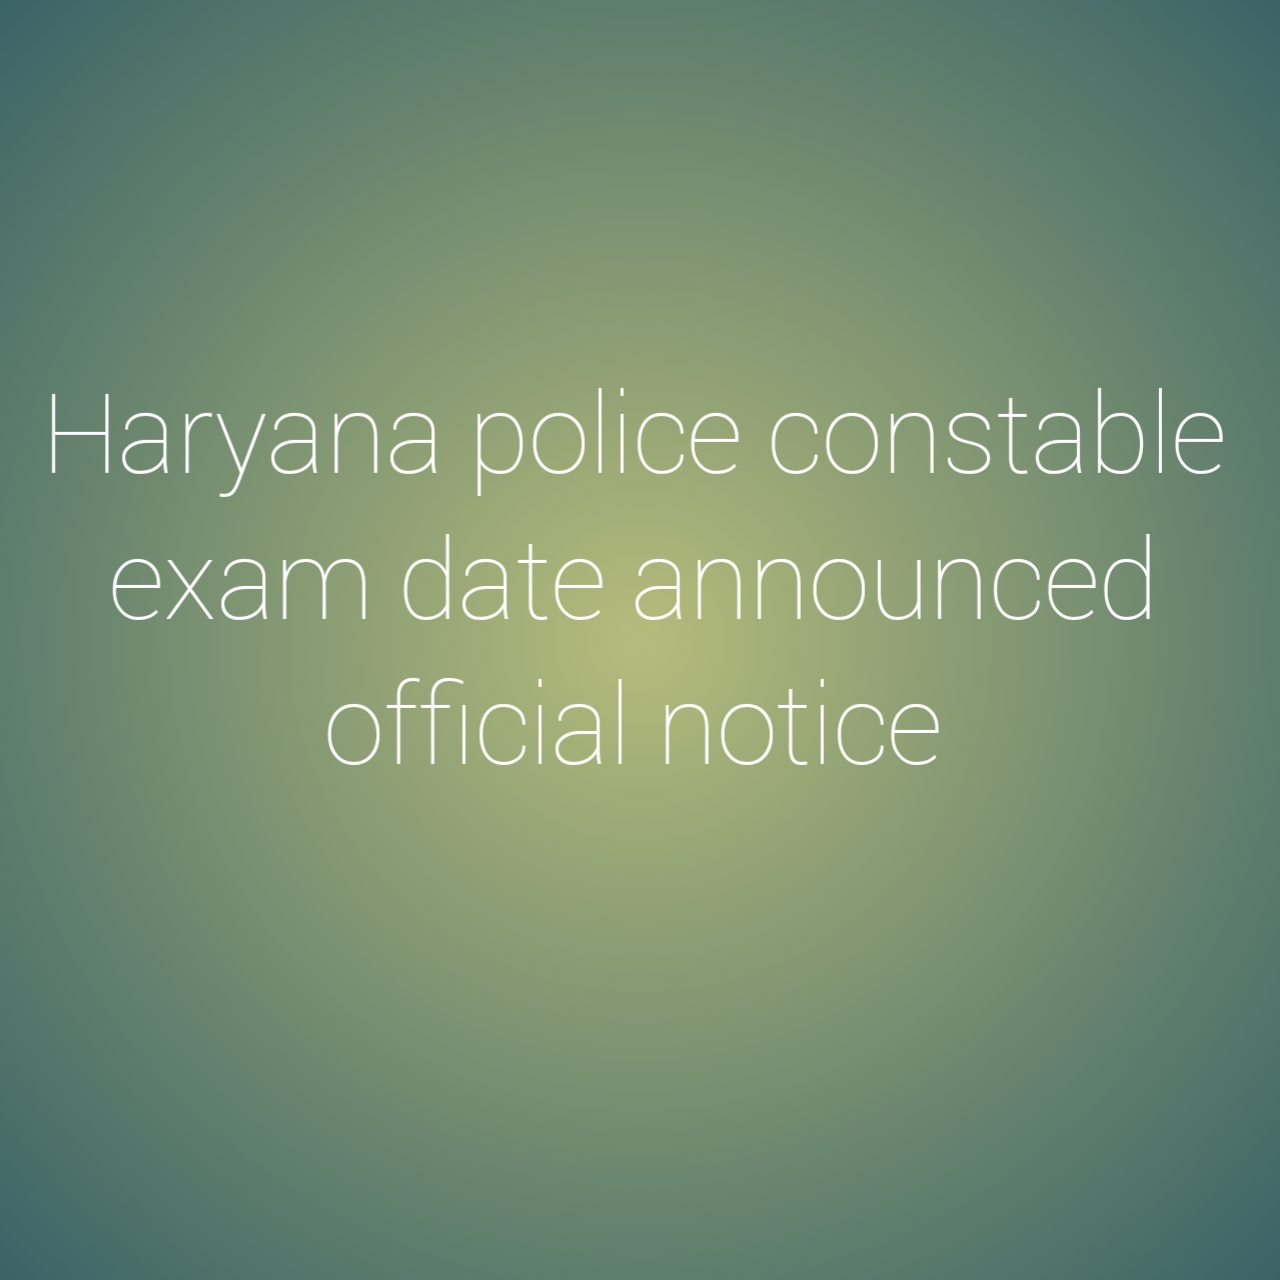 Haryana police constable exam date announced official notice 2021